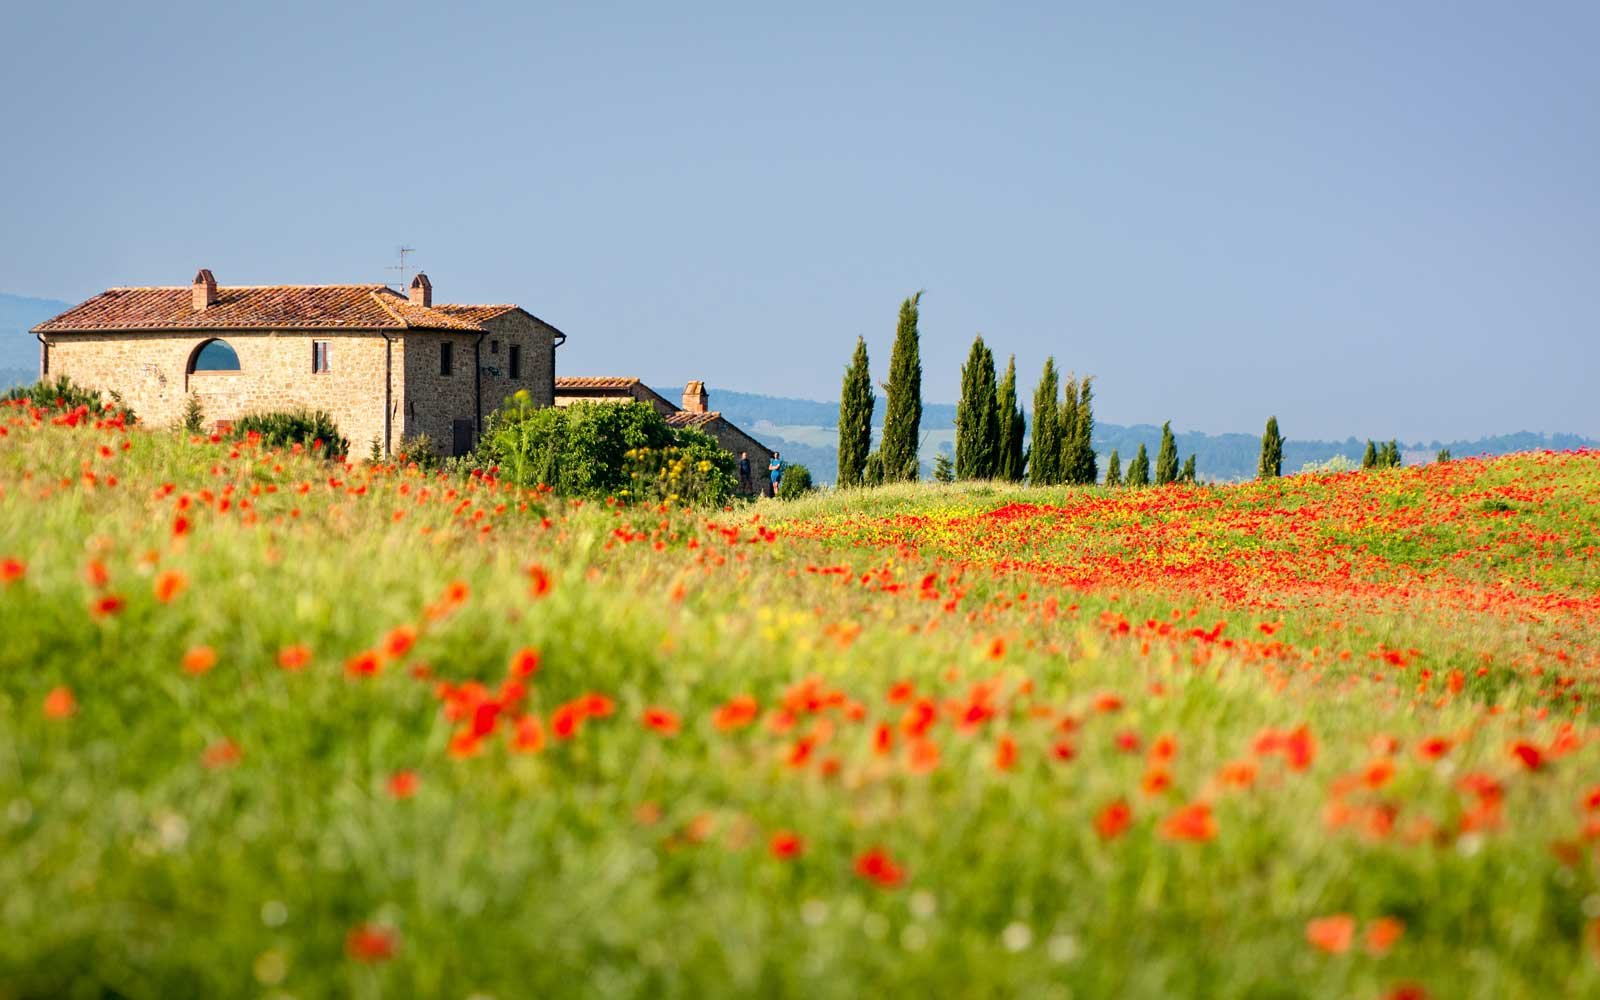 Spring poppies in Tuscany, Italy